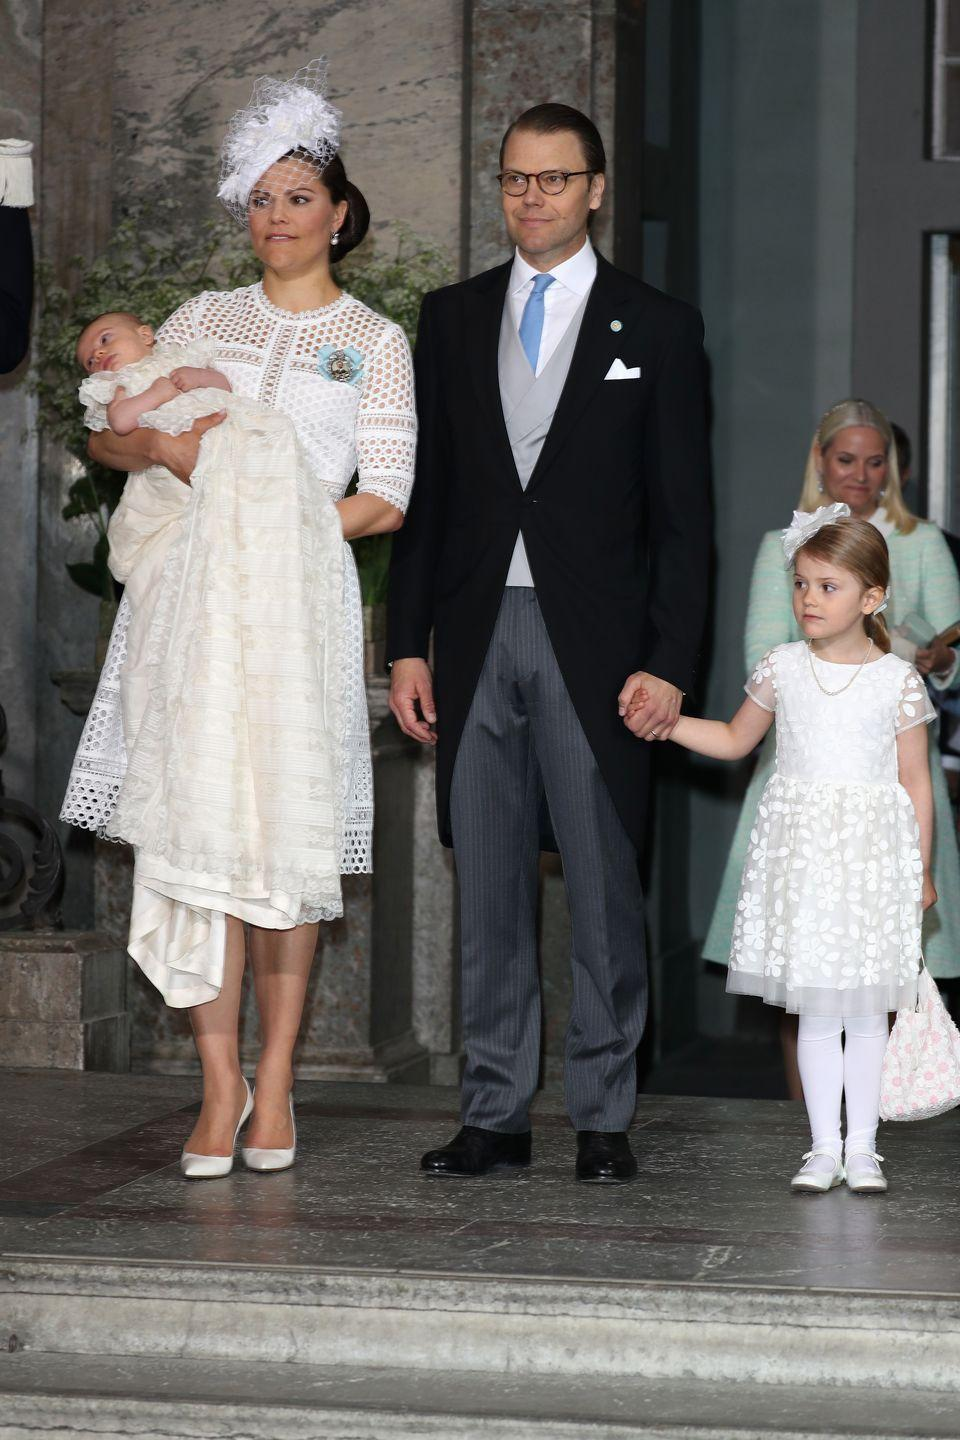 <p>For her son Oscar's baptism, she chose a white broderie anglaise dress and matching hat and shoes. She's active in children's charities in Sweden, including her own, the Crown Princess Victoria Fund, which puts money toward recreational activities for children with chronic illness.</p>